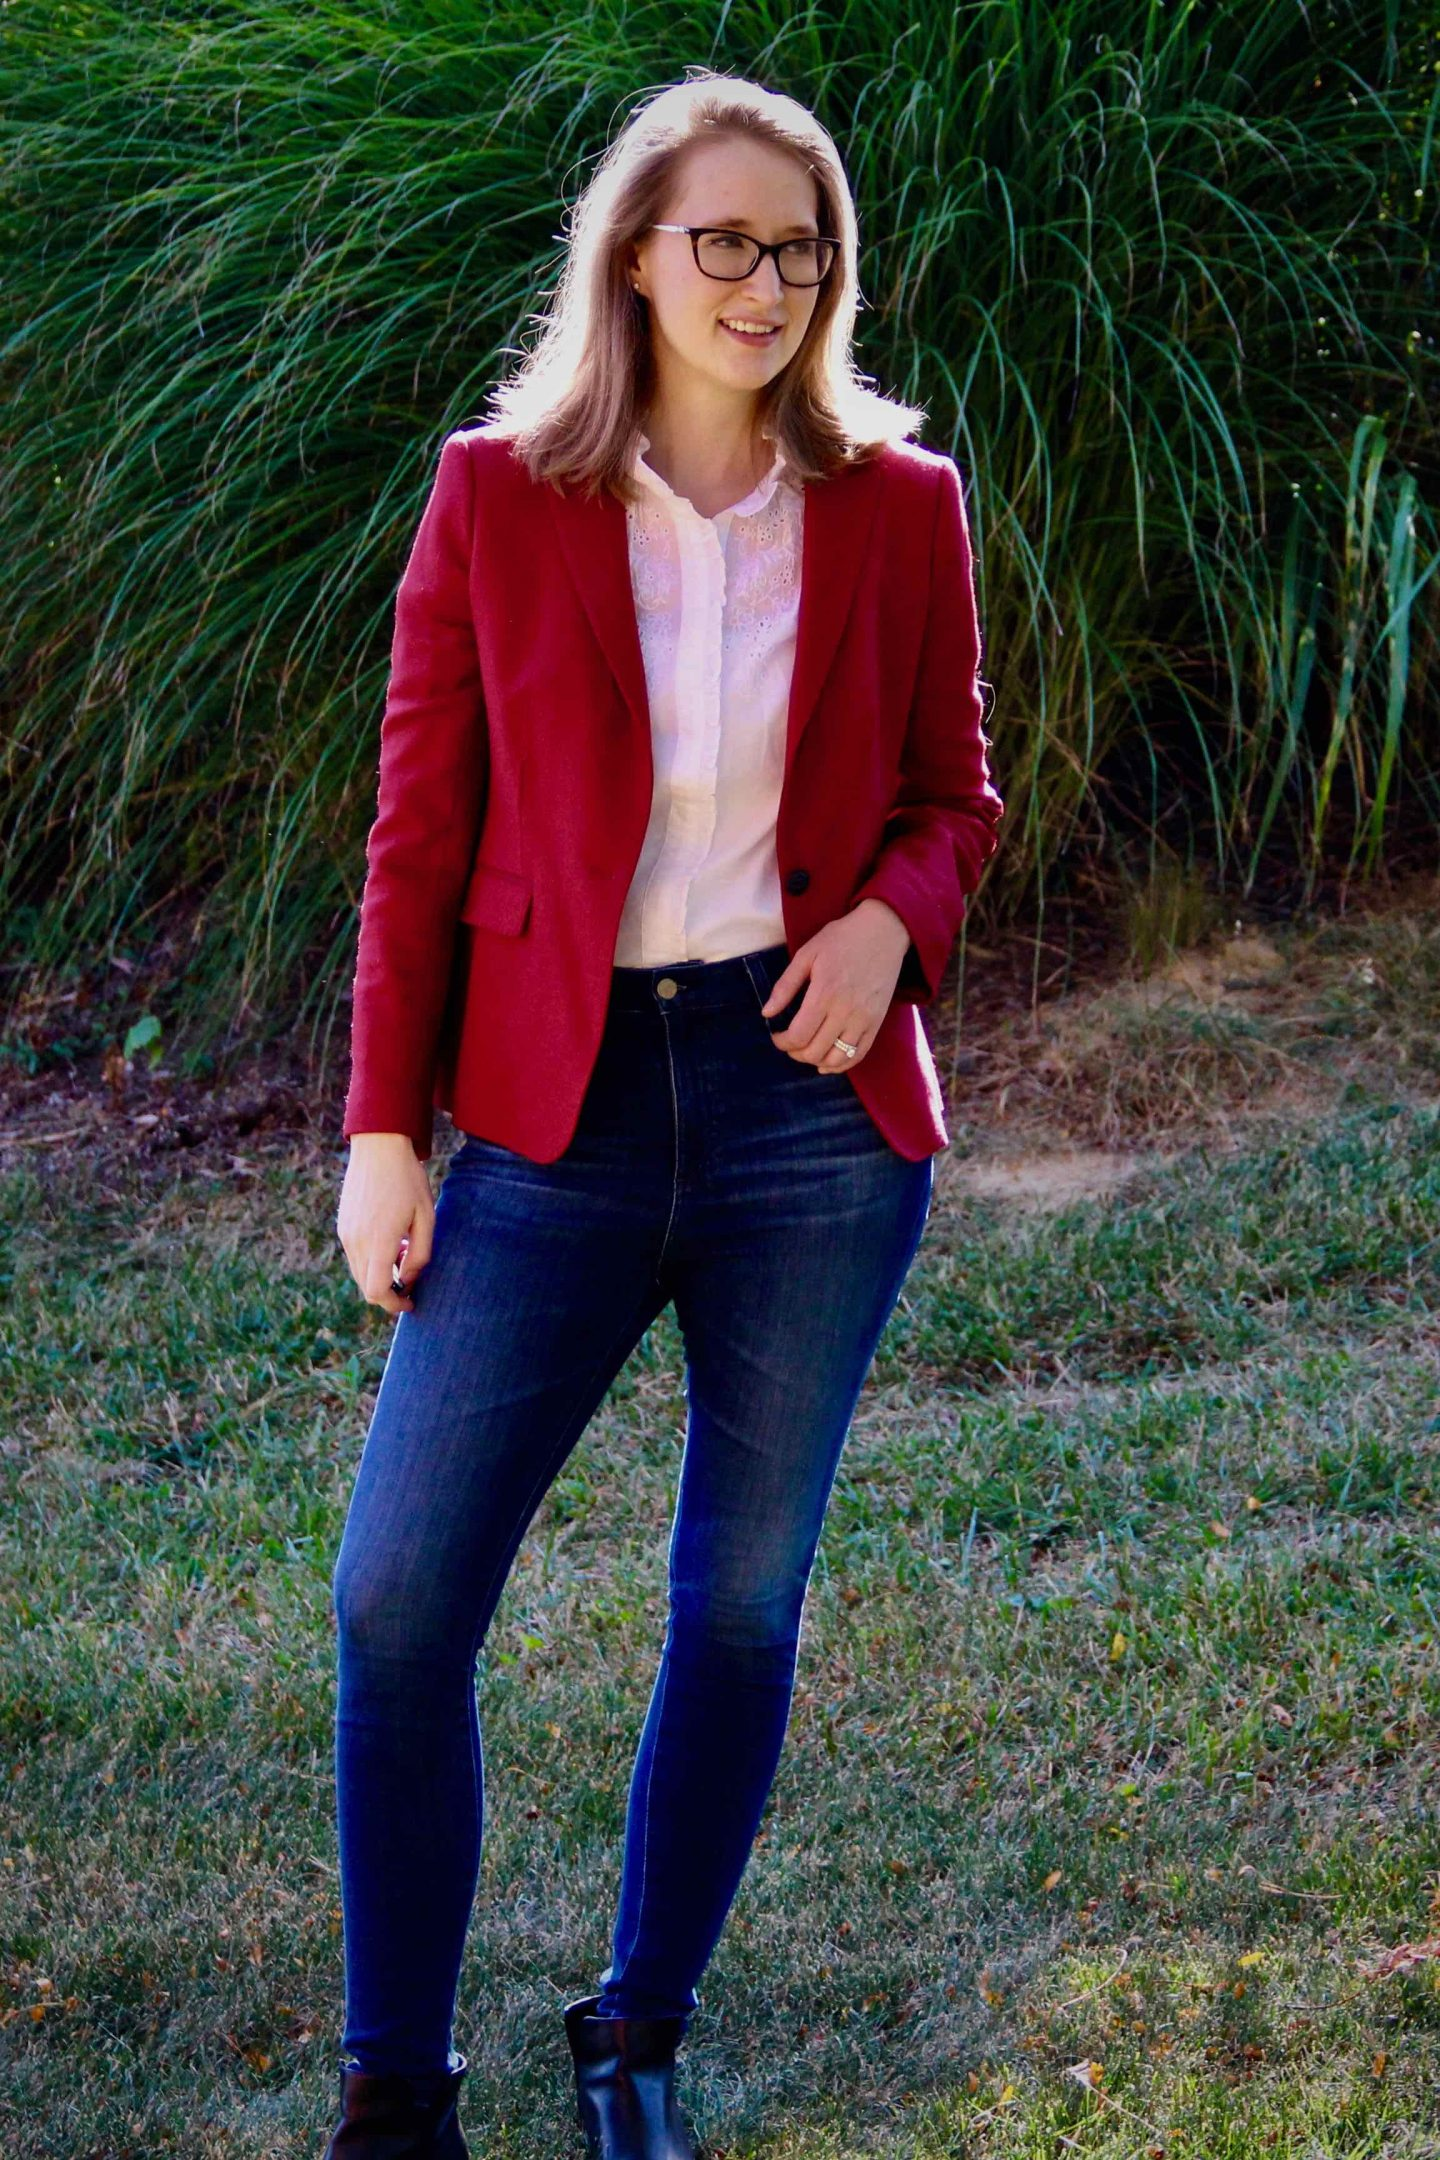 Fall Fashion   Rag & Bone Blazer with Embroidered Blouse   The Spectacular Adventurer